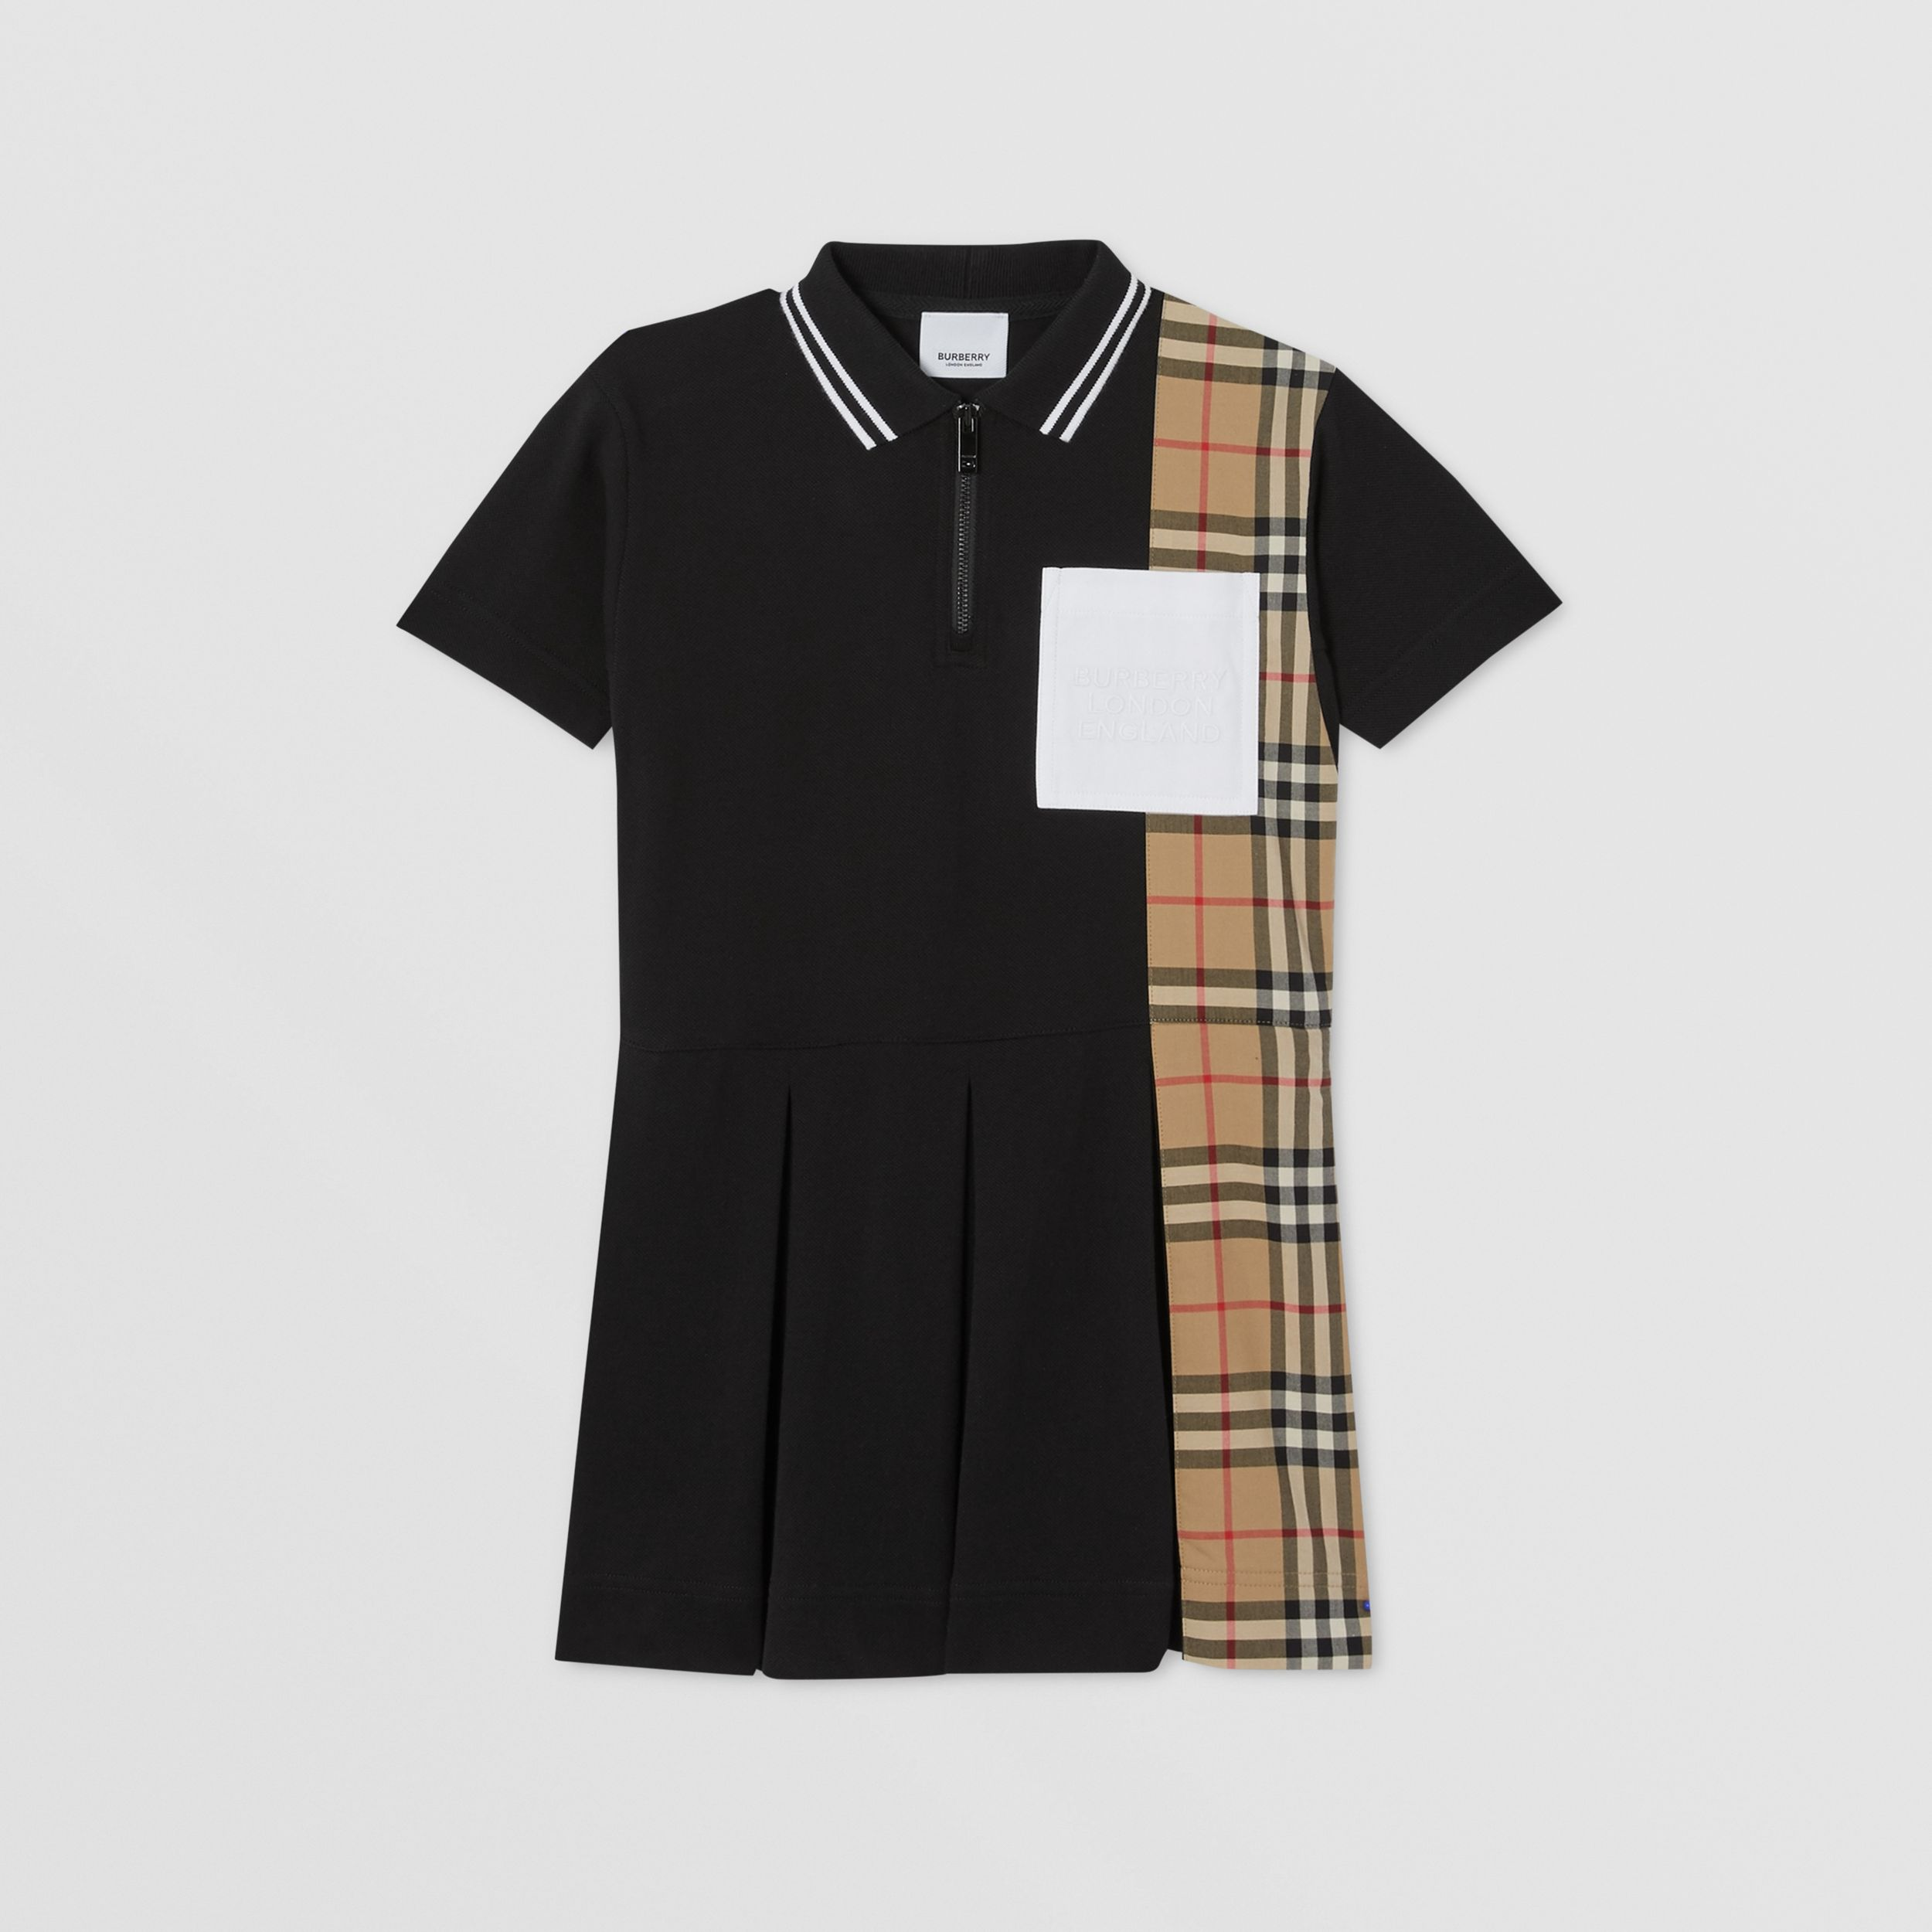 Vintage Check Panel Cotton Piqué Polo Shirt Dress in Black | Burberry - 1